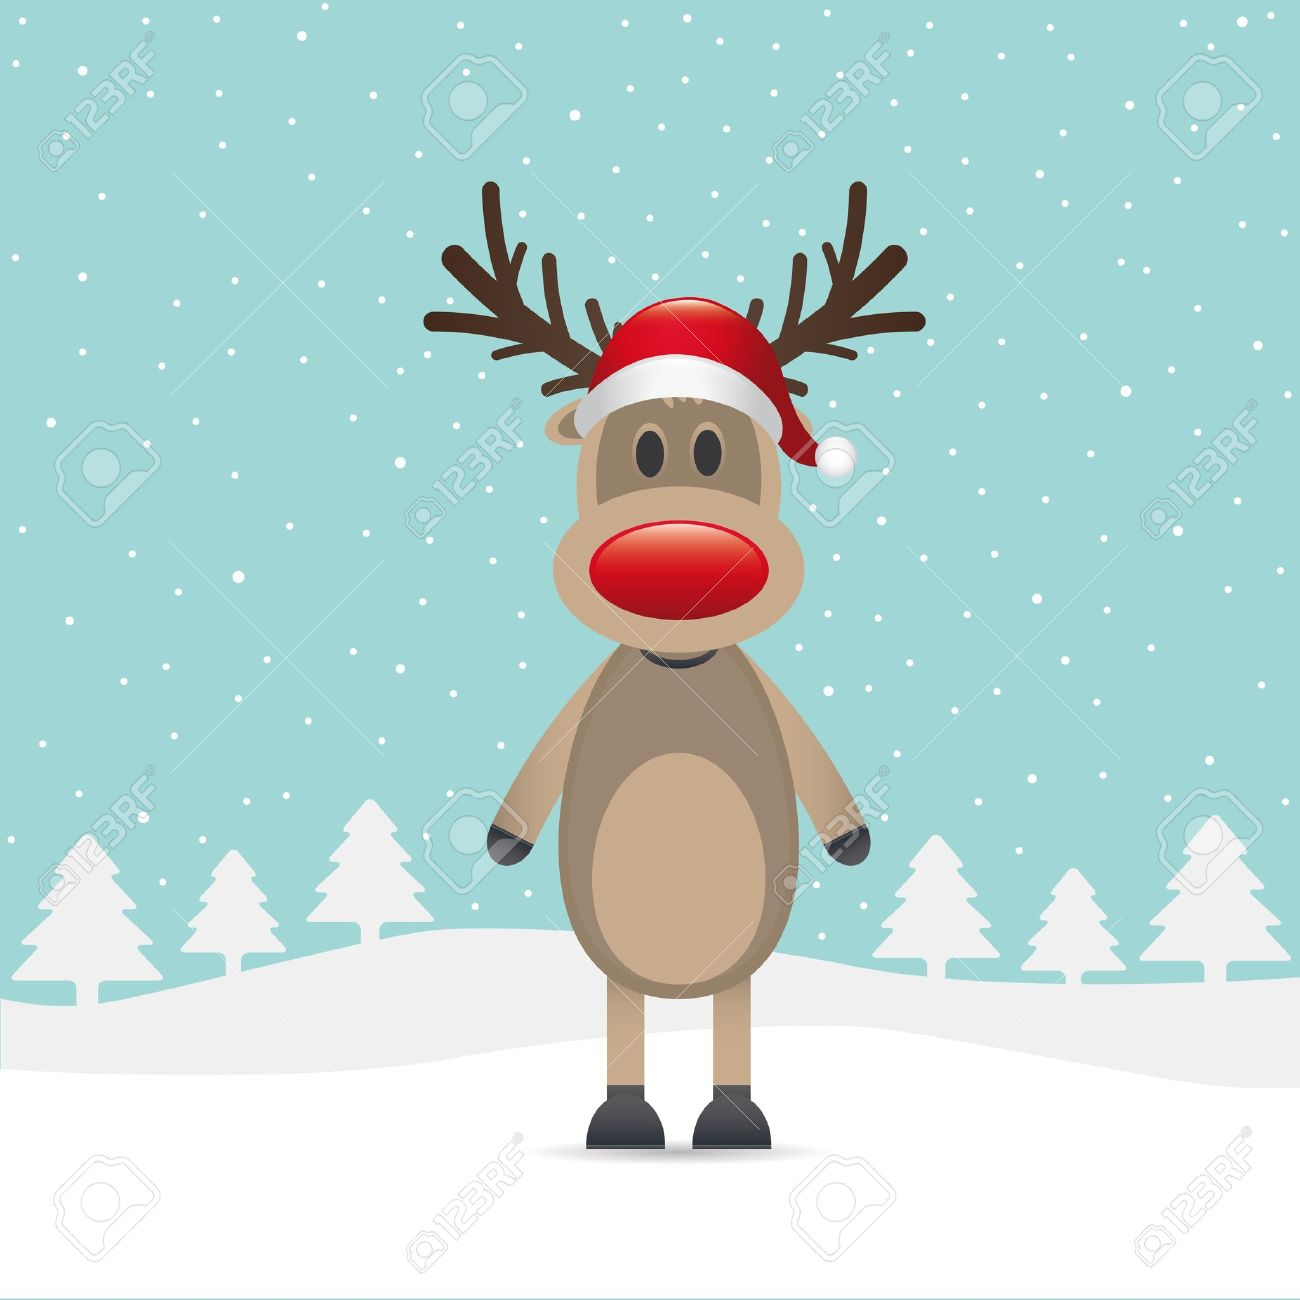 rudolph reindeer red nose santa claus hat stock photo 15580165 - Rudolph And Santa